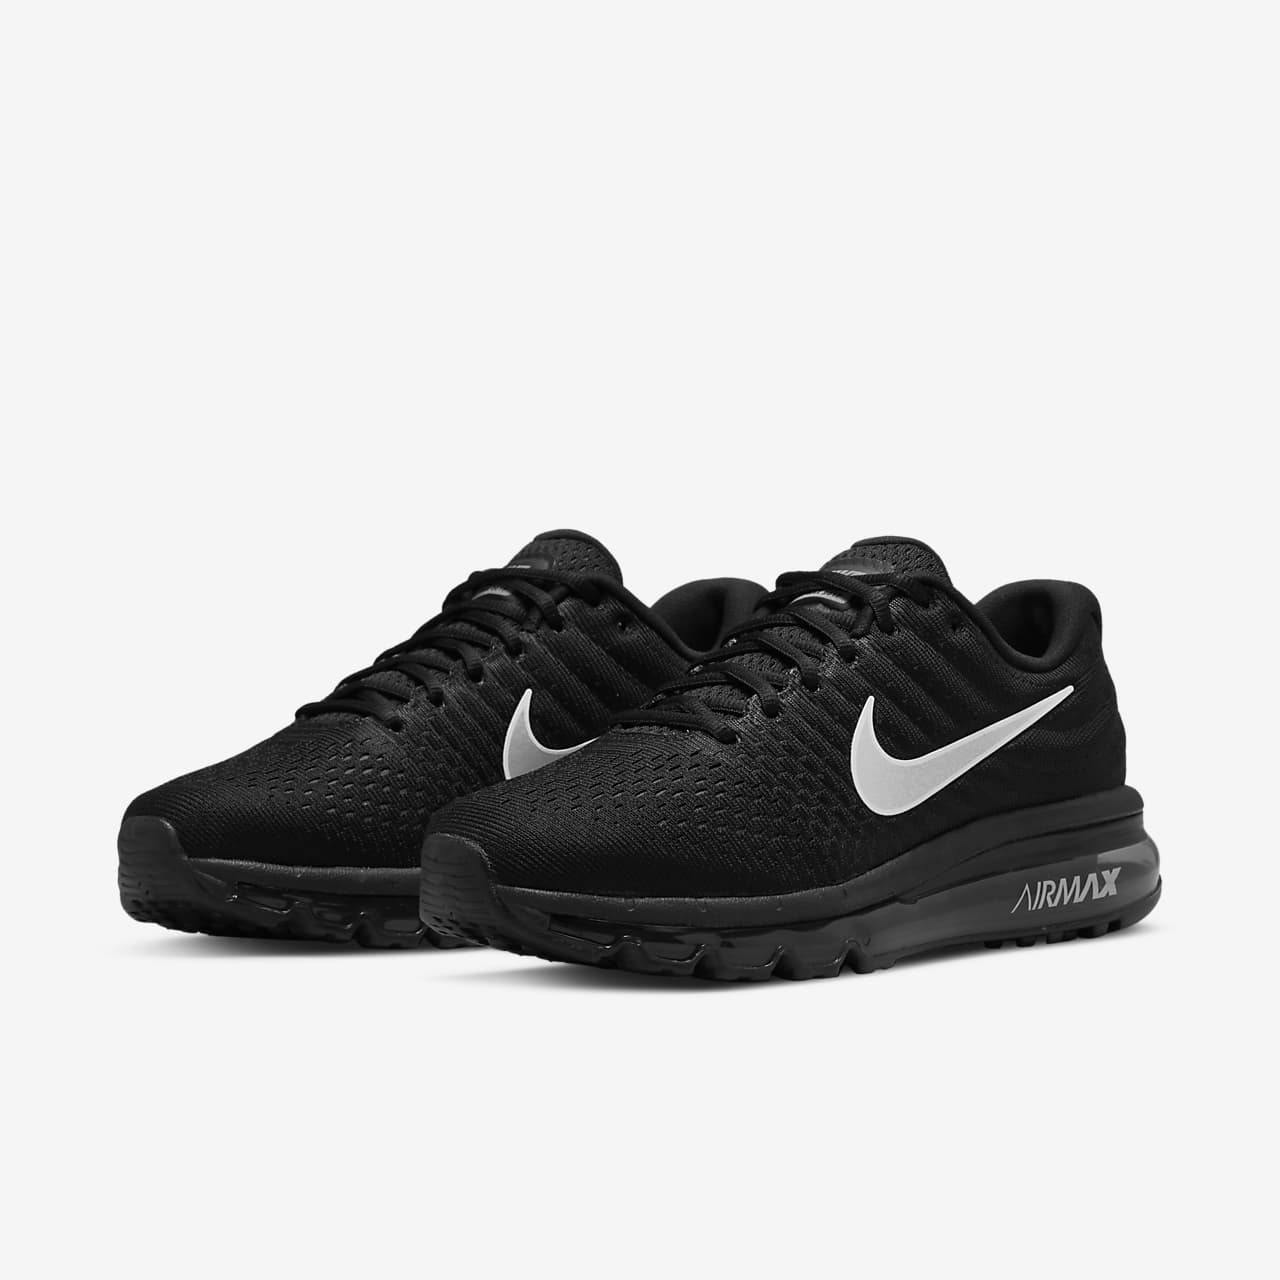 9261e4cc9529 Nike Air Max 2017 Women s Shoe. Nike.com AU